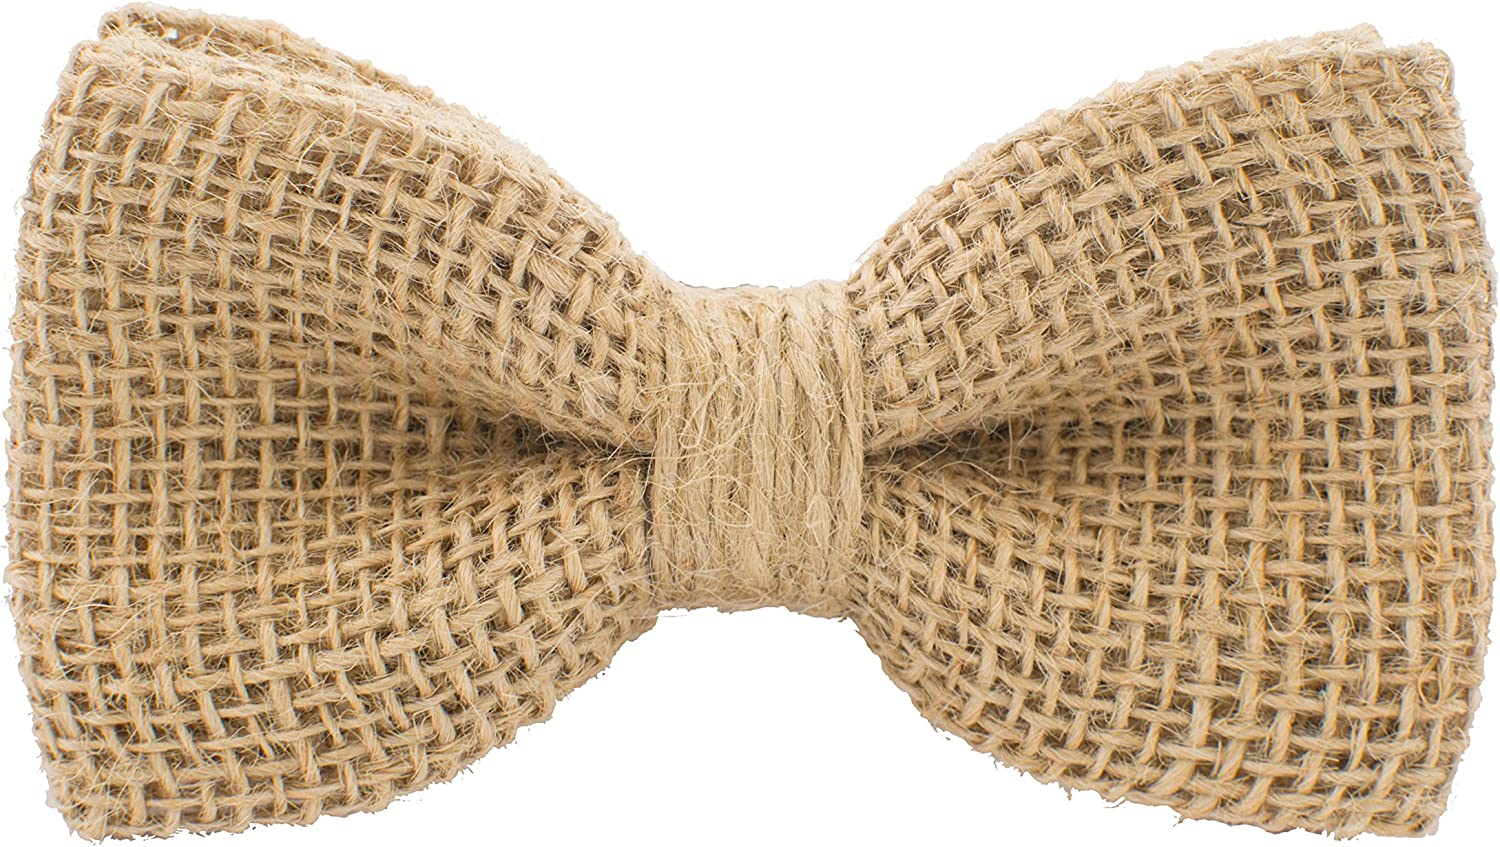 Rustic Pre-Tied Bow Tie in 100% Burlap Hessian for Adults & Children Linen Hemp Bagging, by Bow Tie House